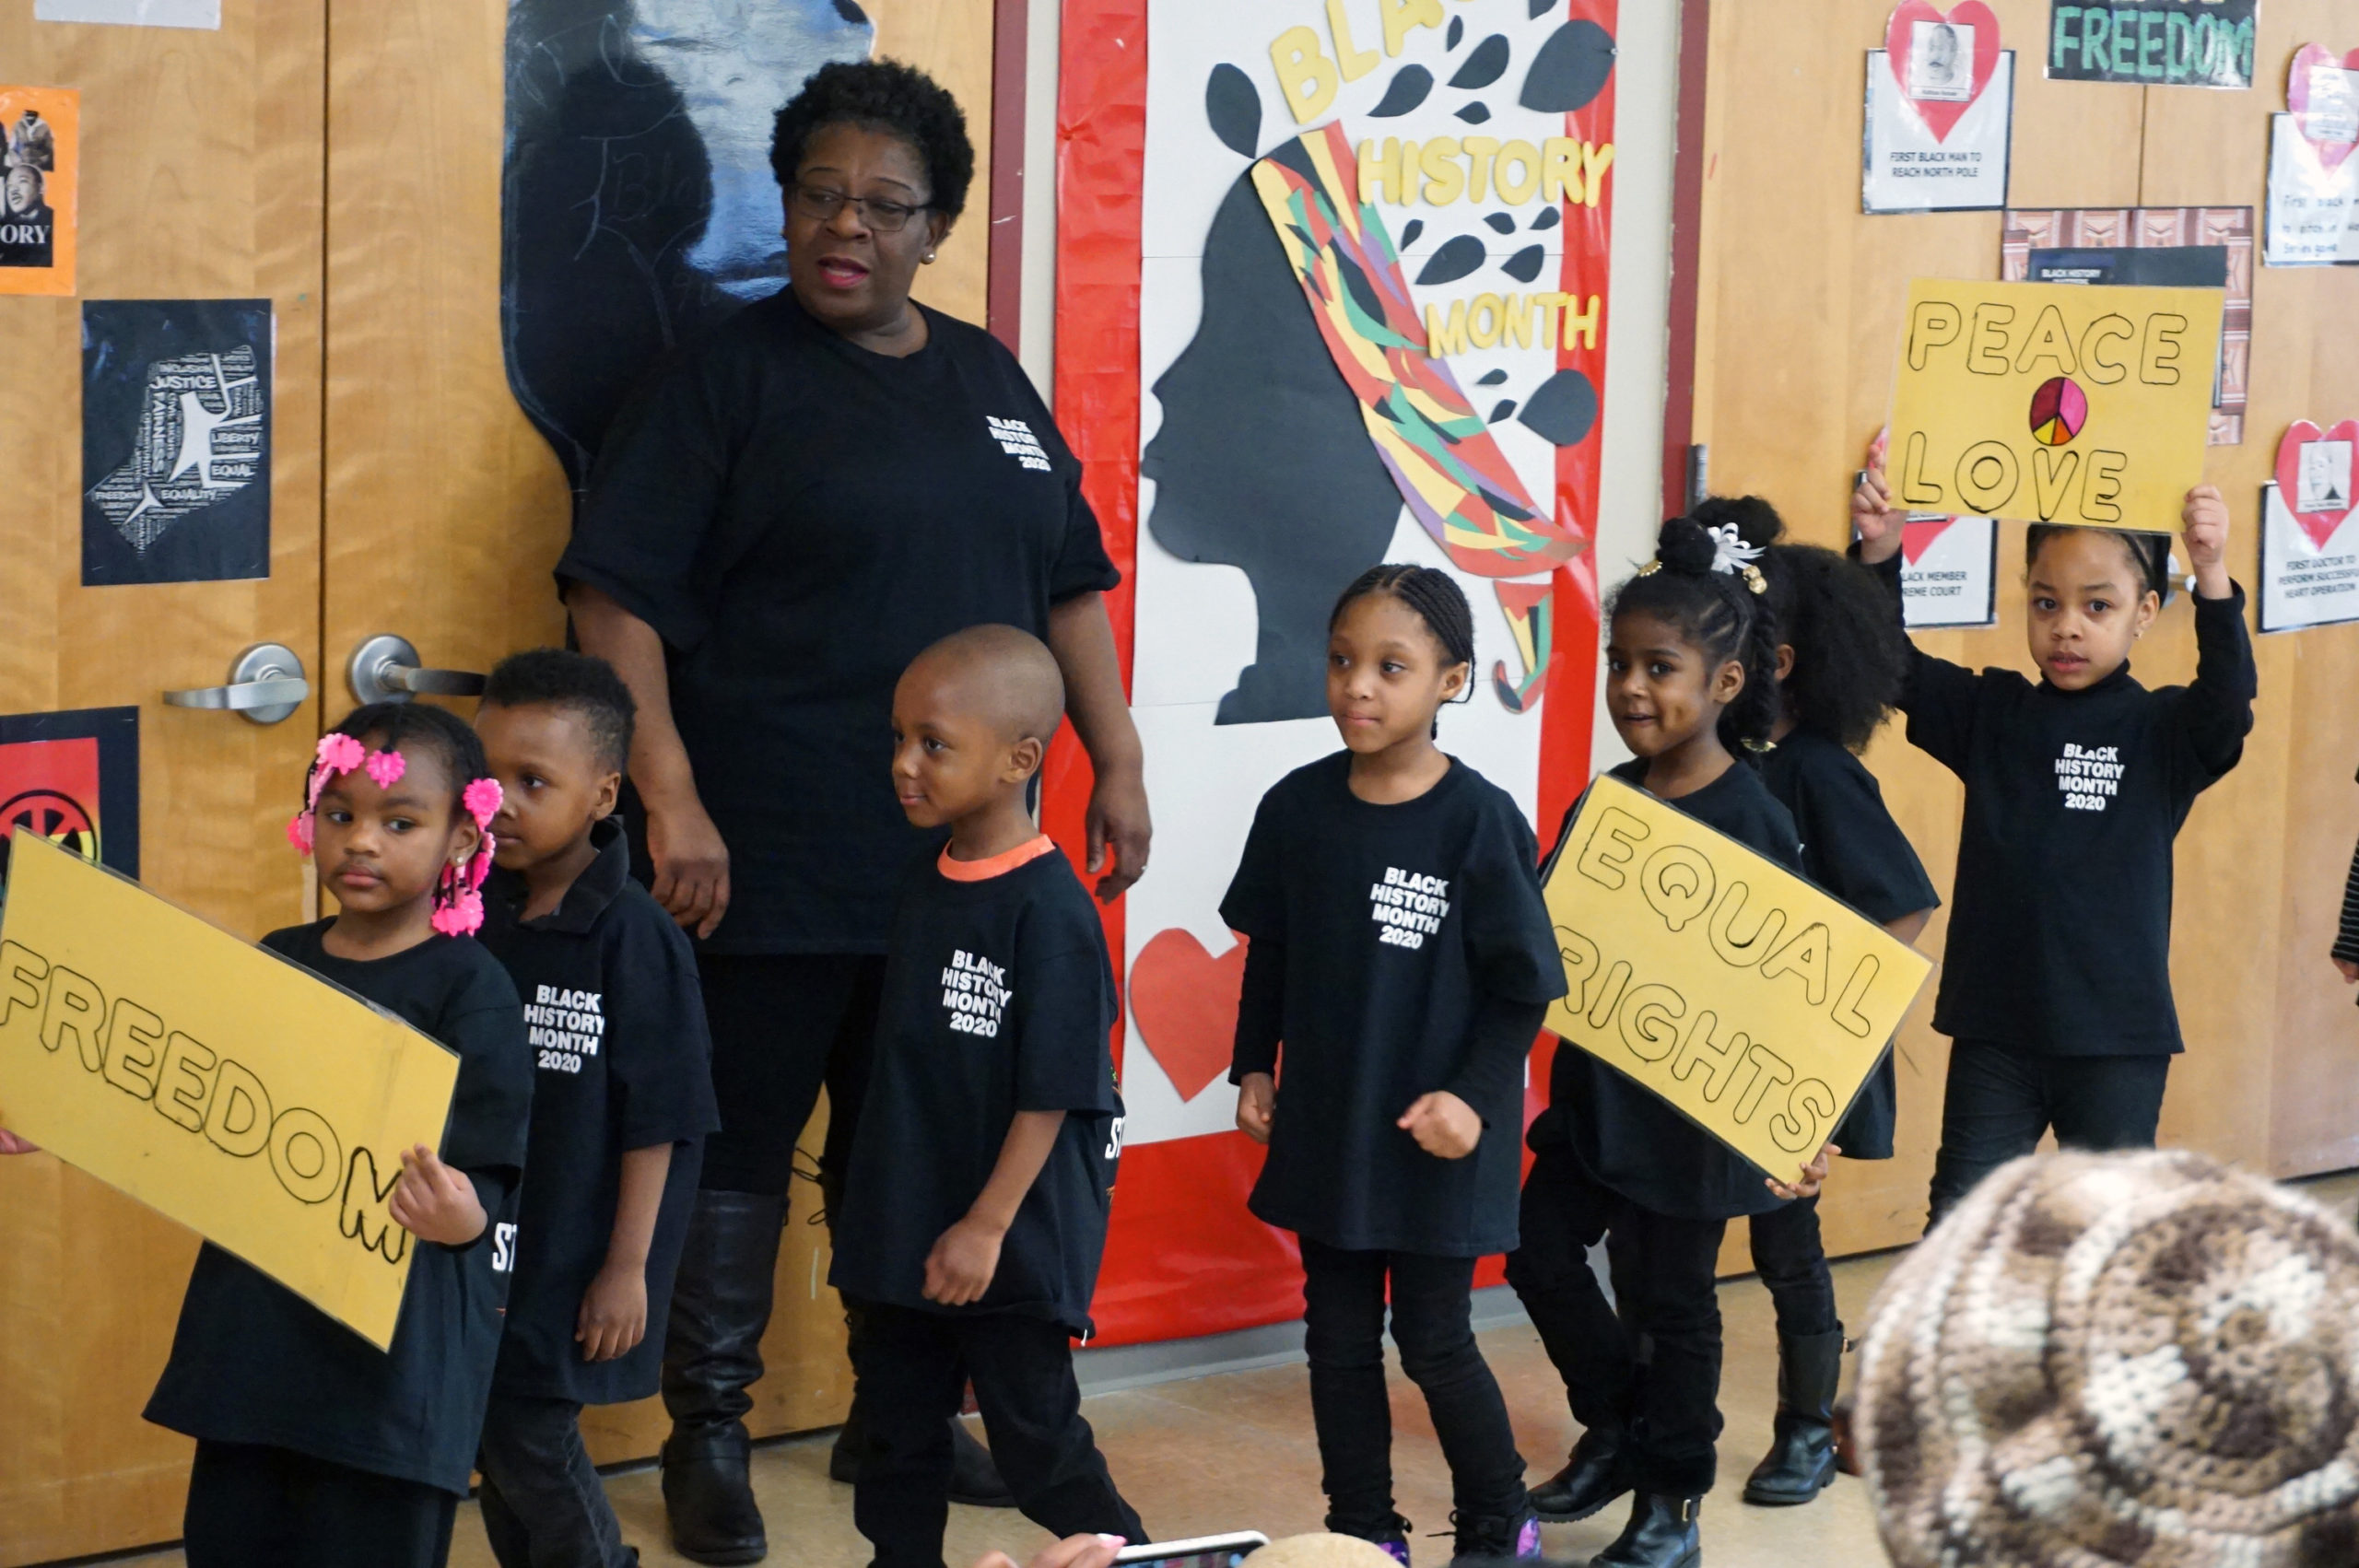 CHELC Black History Month Celebration Class with Shirts and Signs